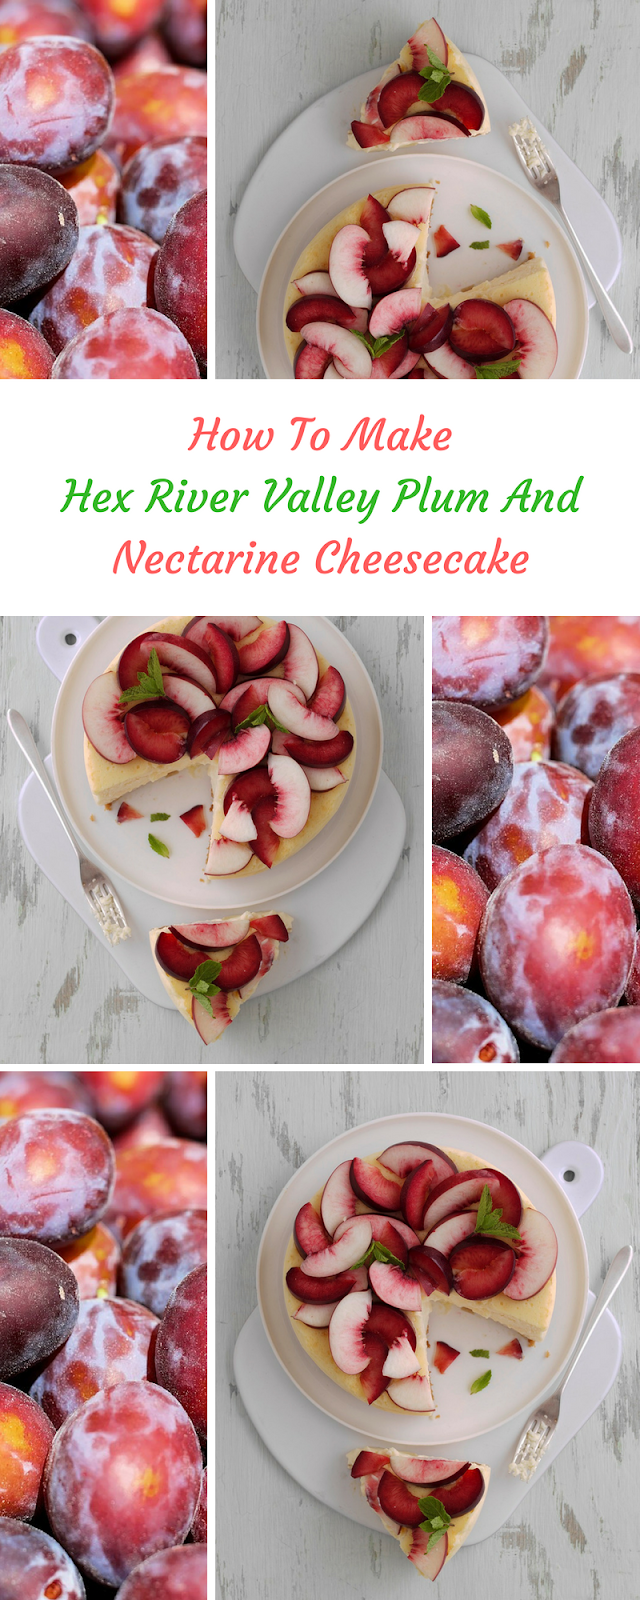 Hex River Valley Plum And Nectarine Cheesecake